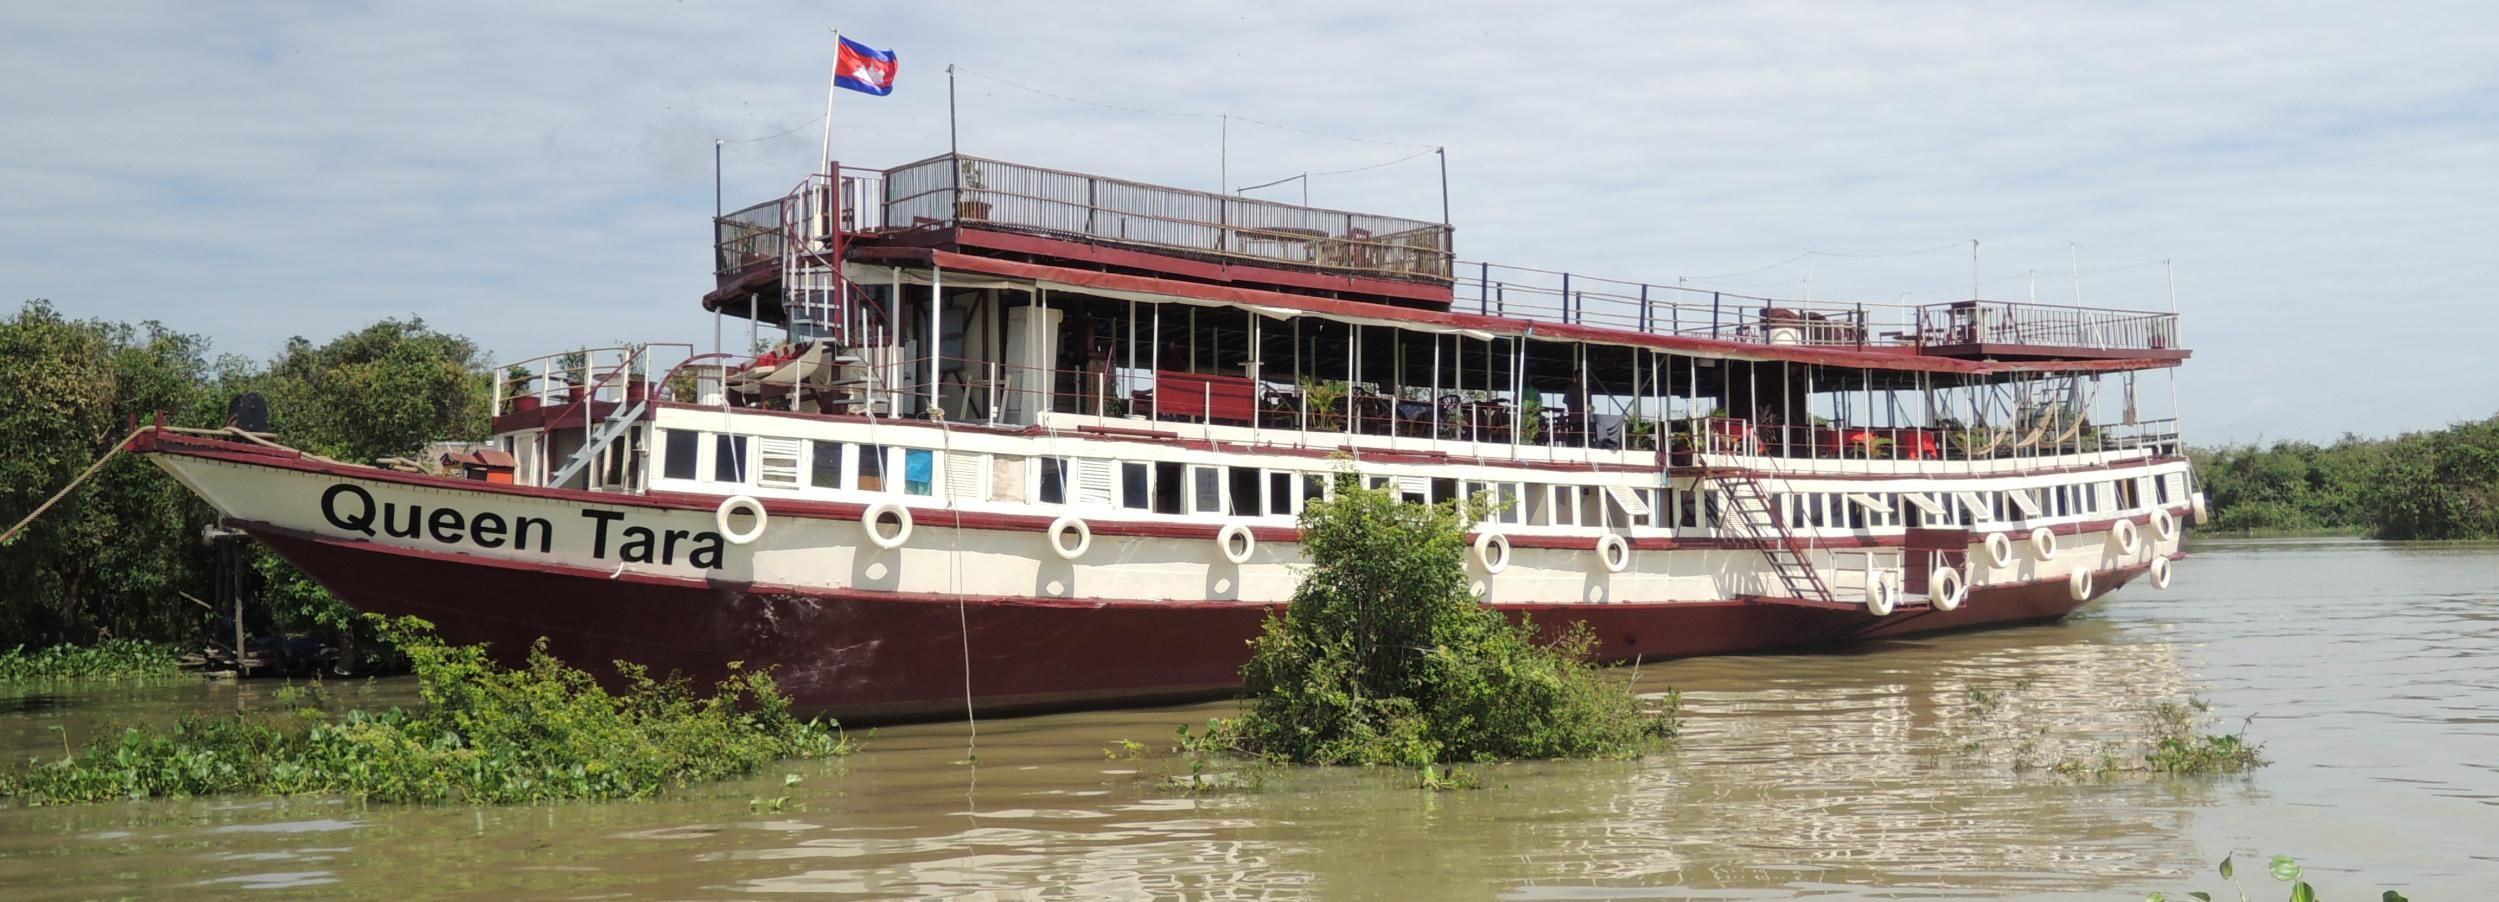 Prek Toal Bird Sanctuary and Great Lake Tour in Cambodia